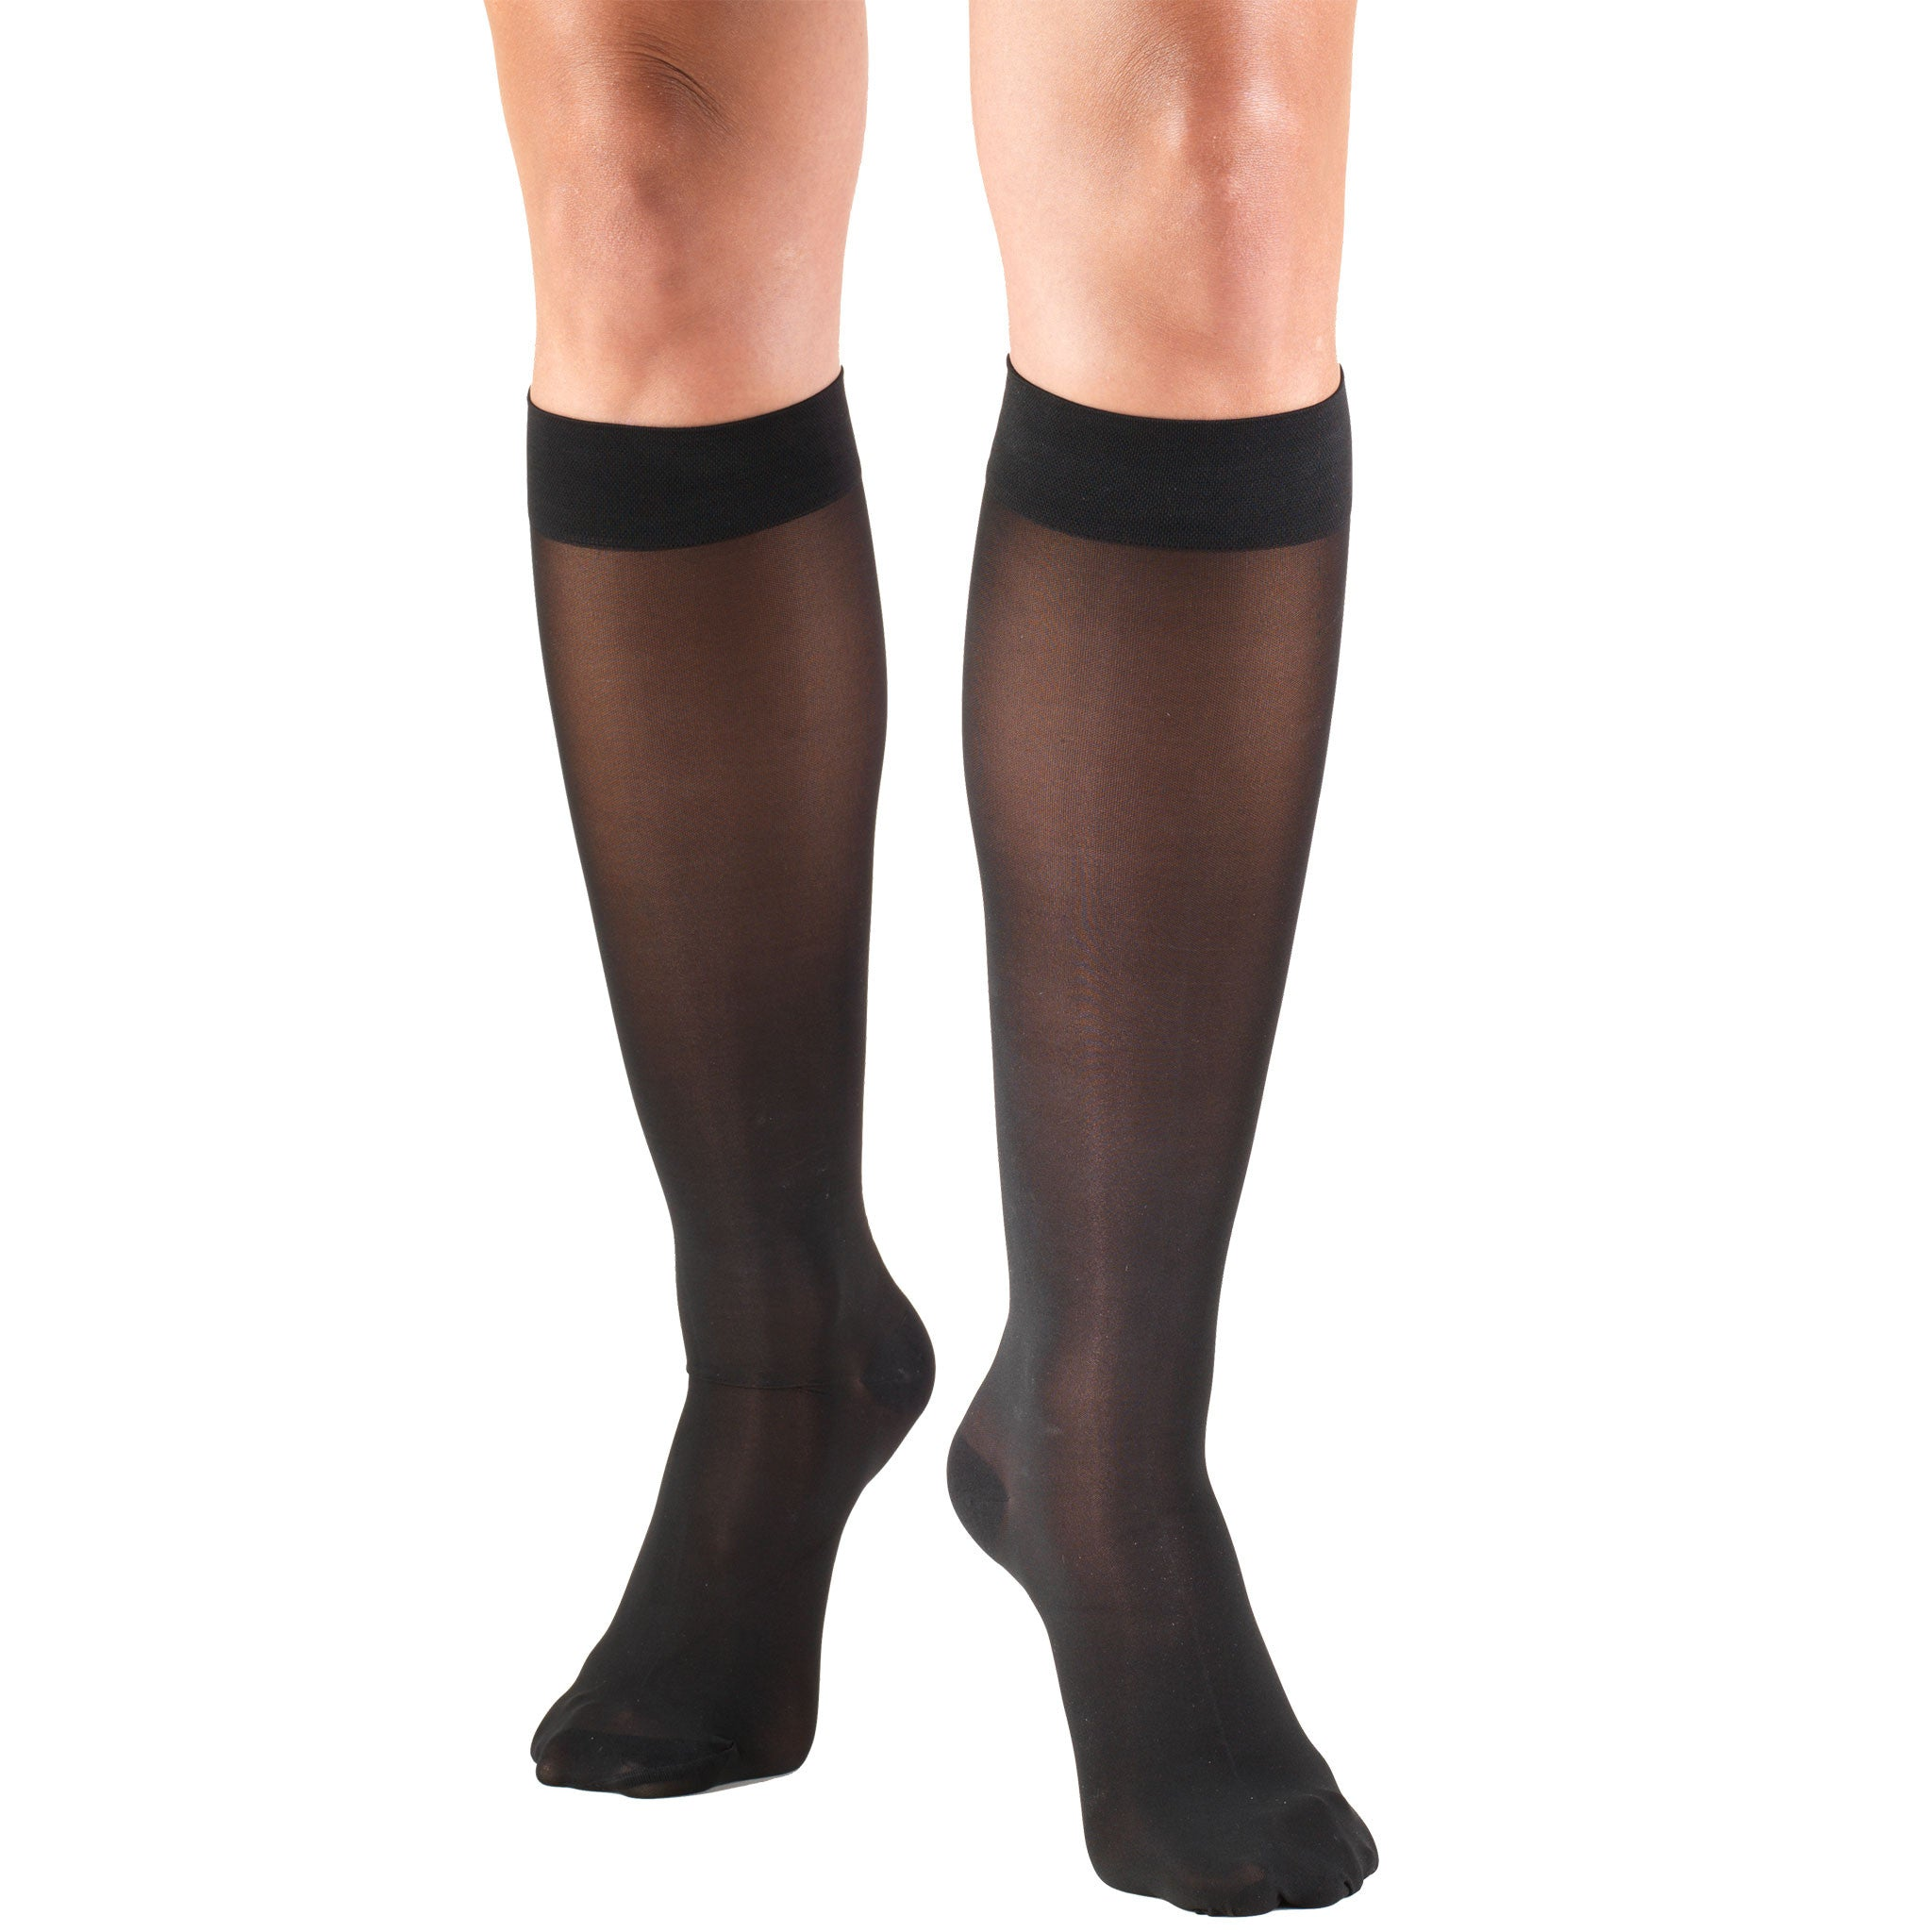 SHEER BELOW KNEE CLOSED TOE BLACK STOCKINGS